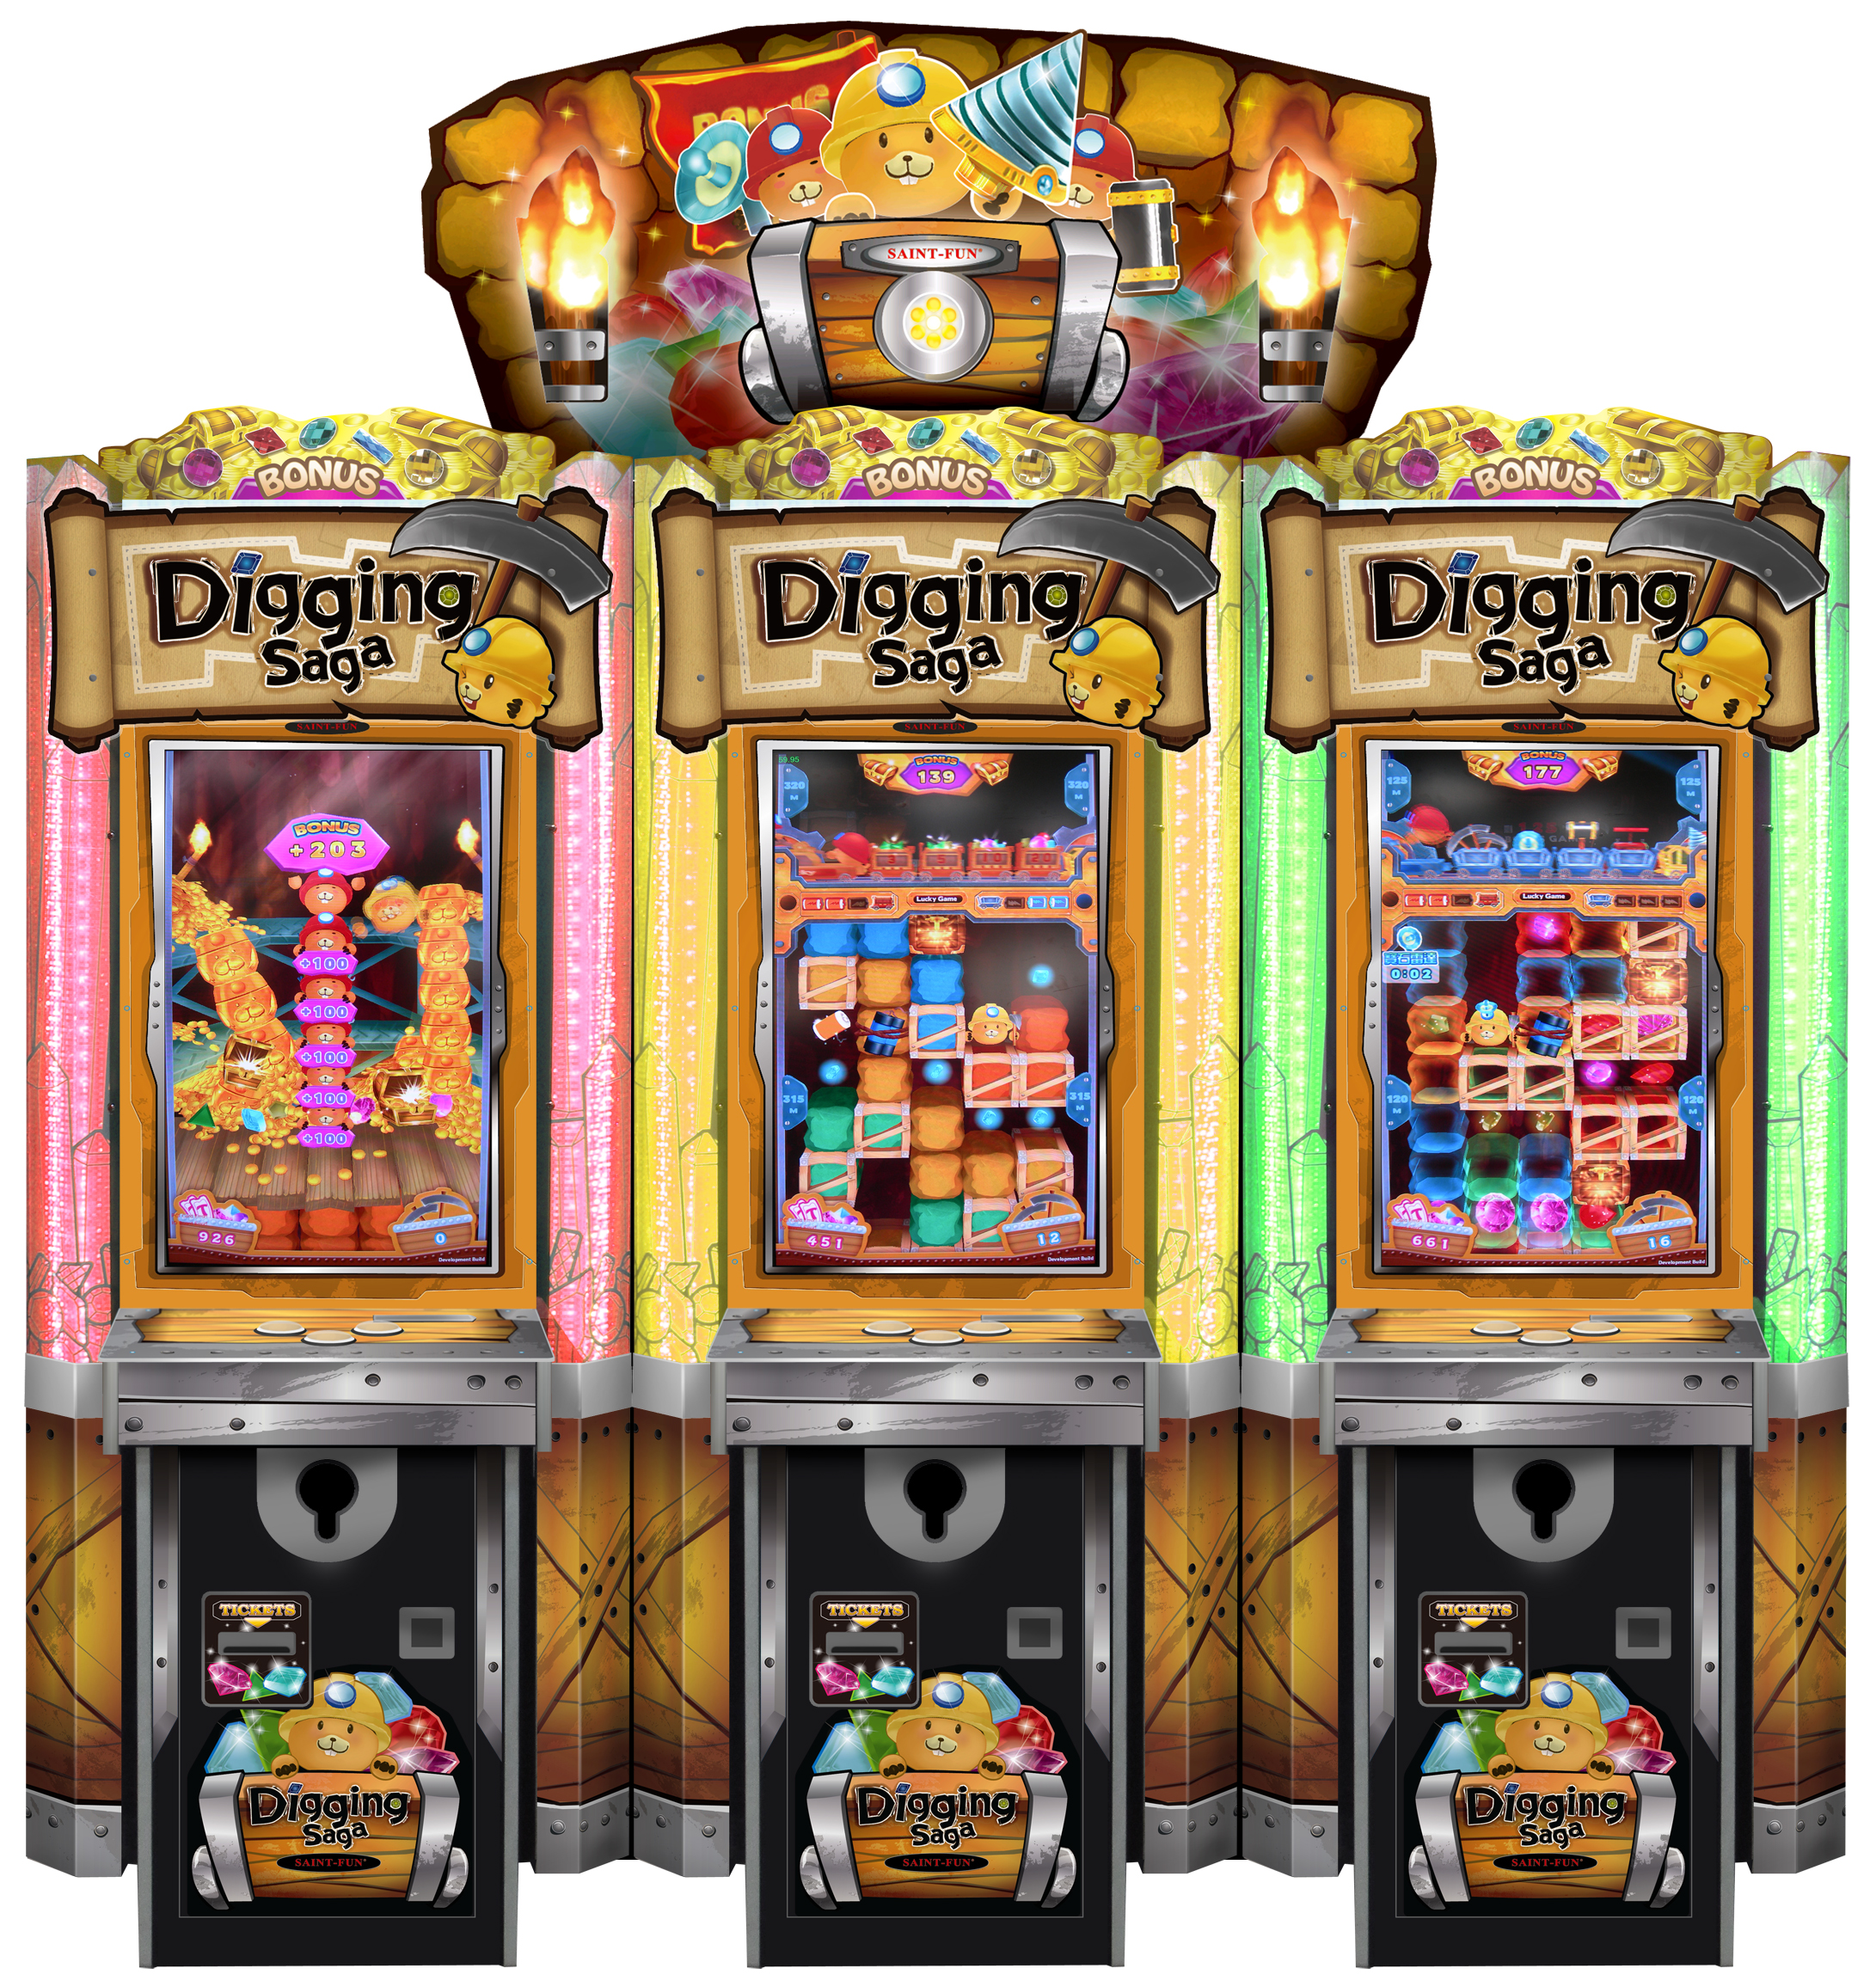 Digging Saga 3 machines